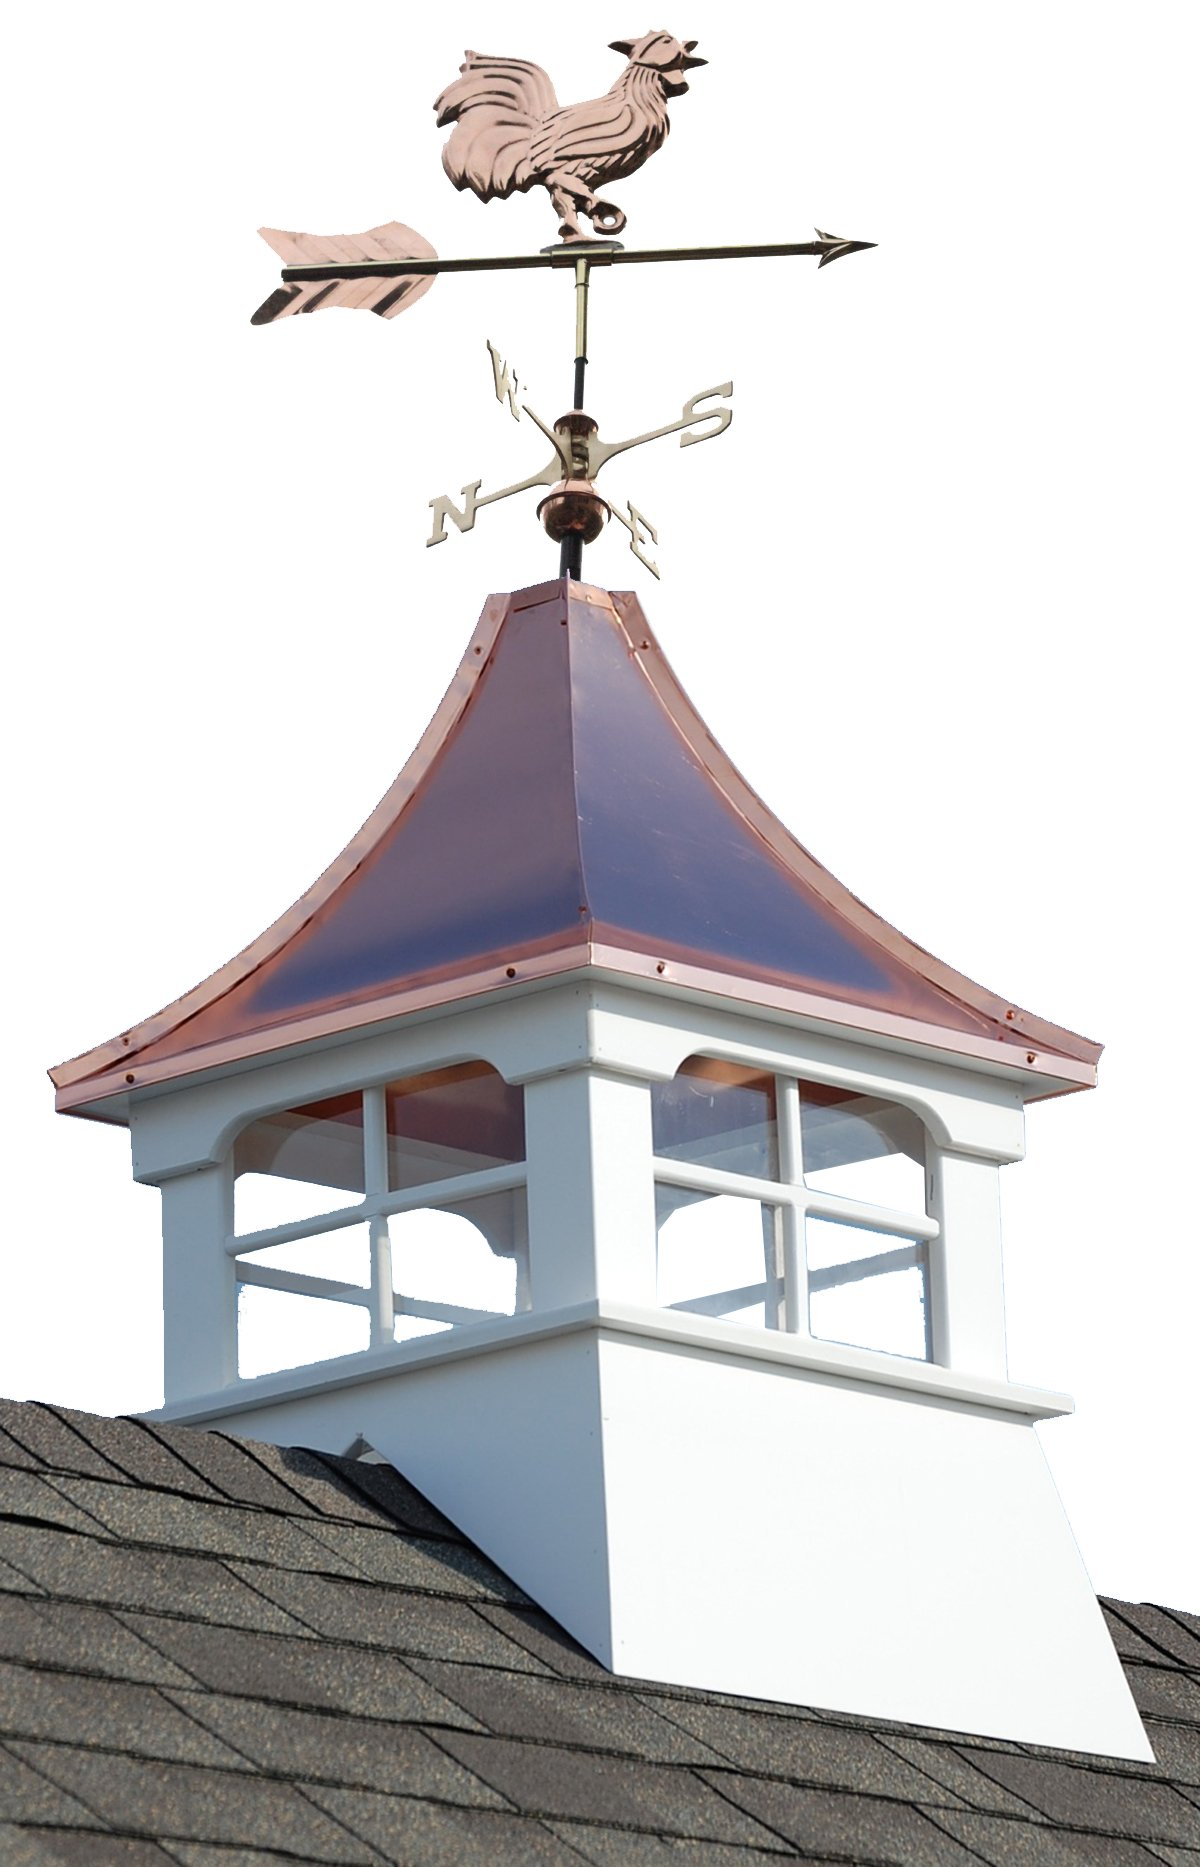 Accentua Charleston Cupola with Rooster Weathervane, 24 in. Square, 55 in. High